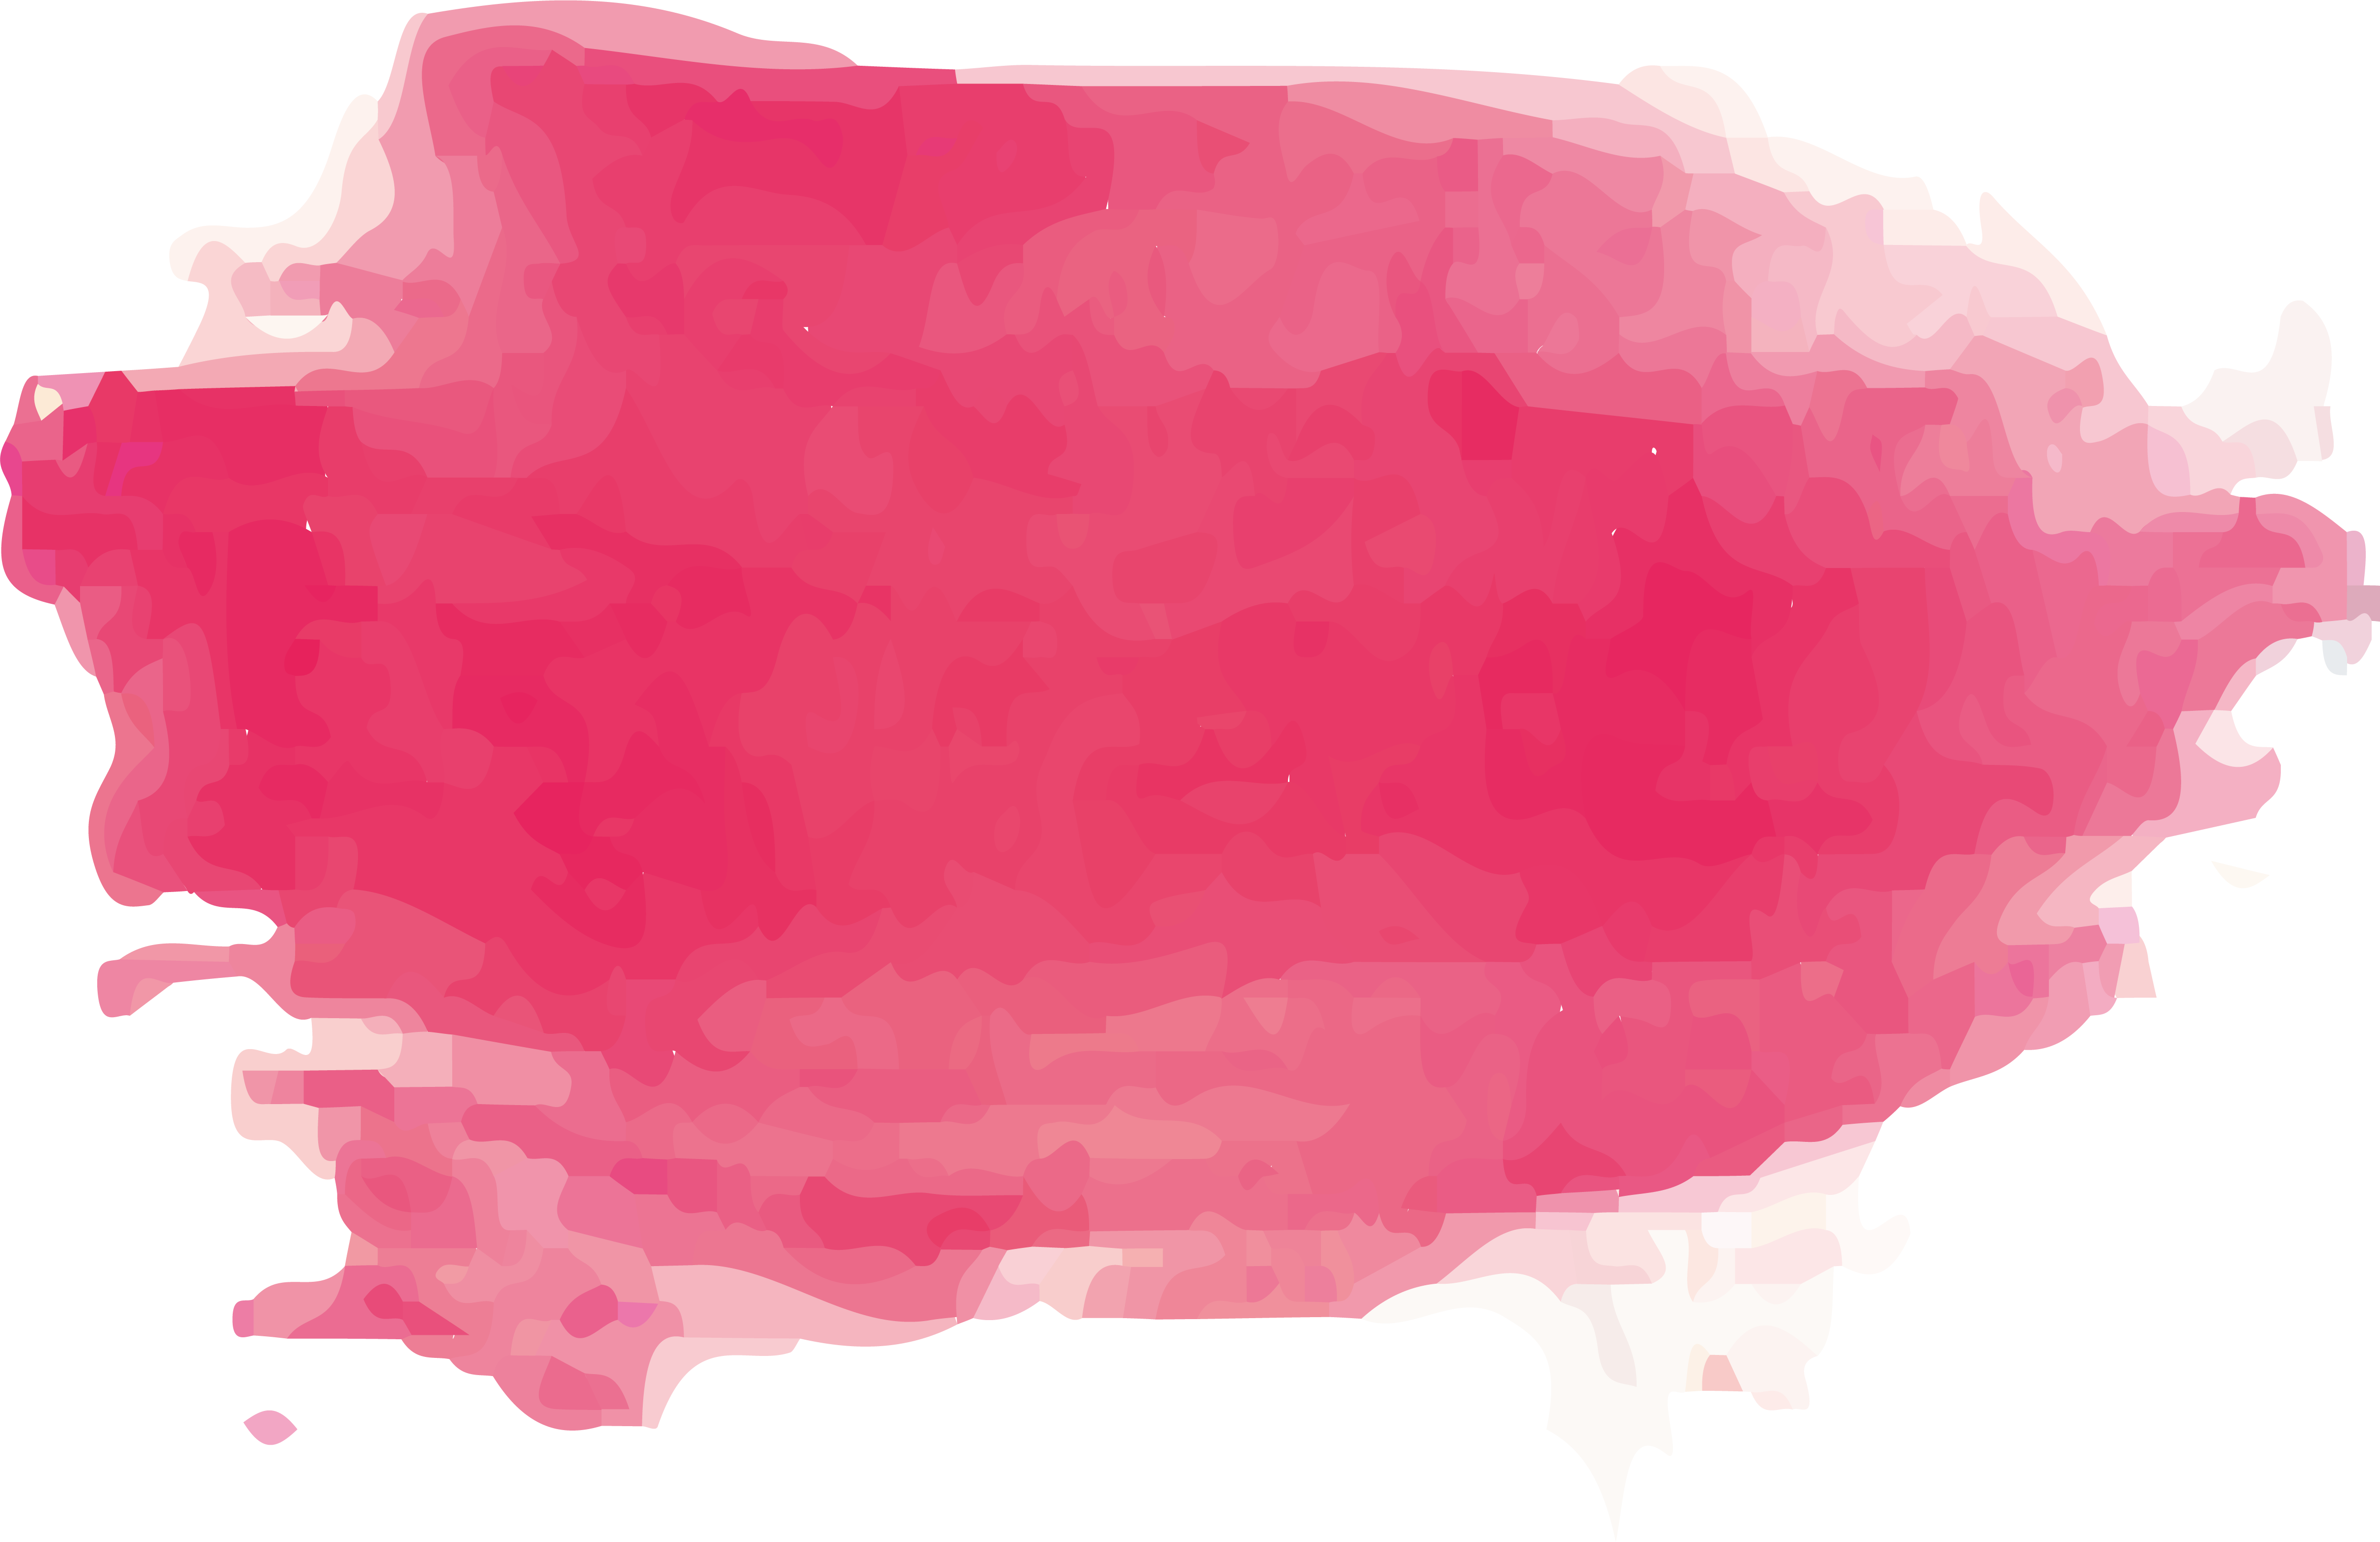 Pink paint stroke png. Watercolor painting brush transprent